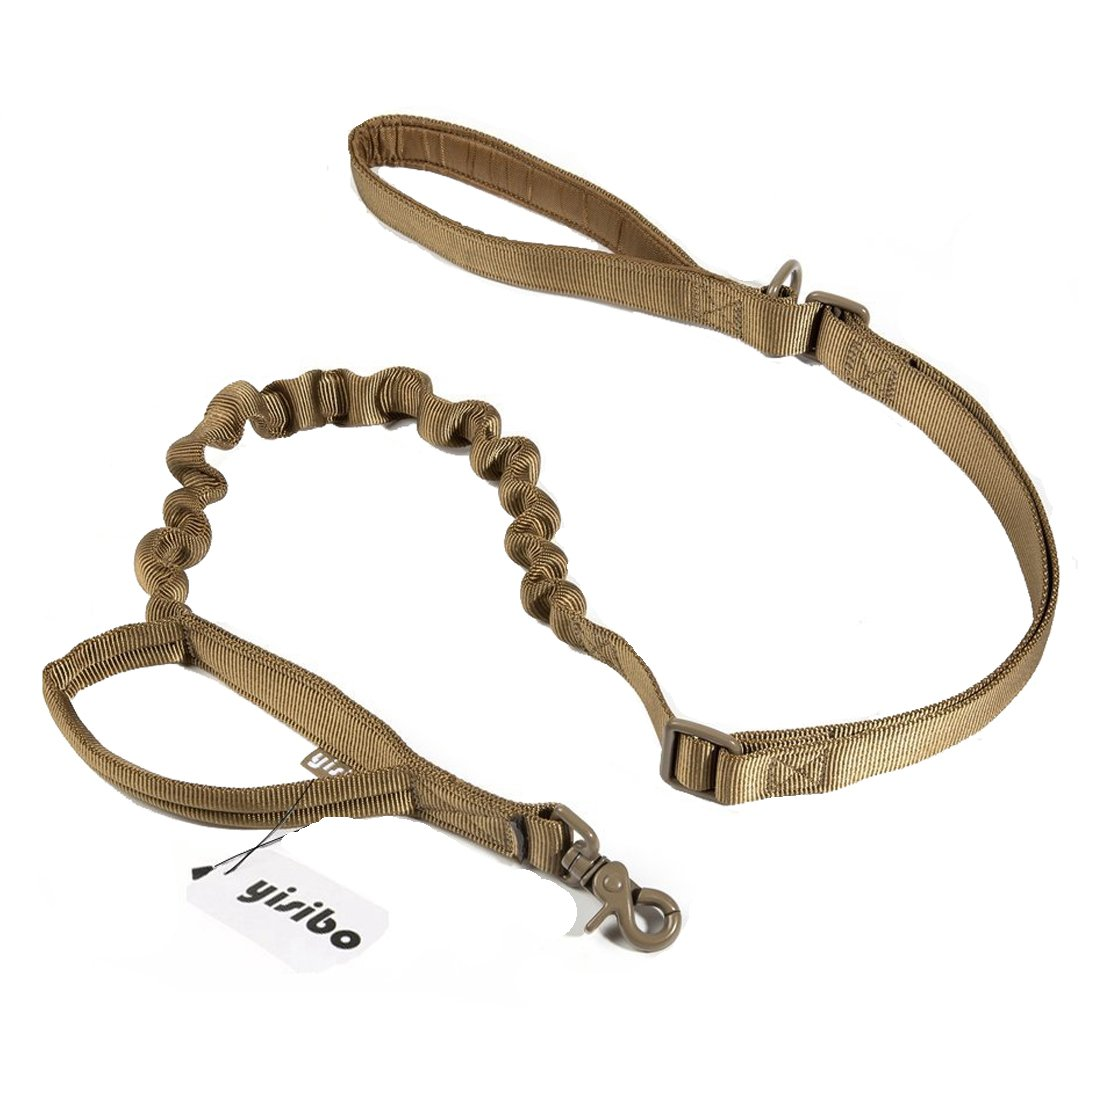 yisibo Training Dog Bungee Leash Tactical Nylon Heavy Duty Dog Leash with Control Handle Quick Release Leads Rope for Medium Large Dogs (Coyote Brown-Enhanced)